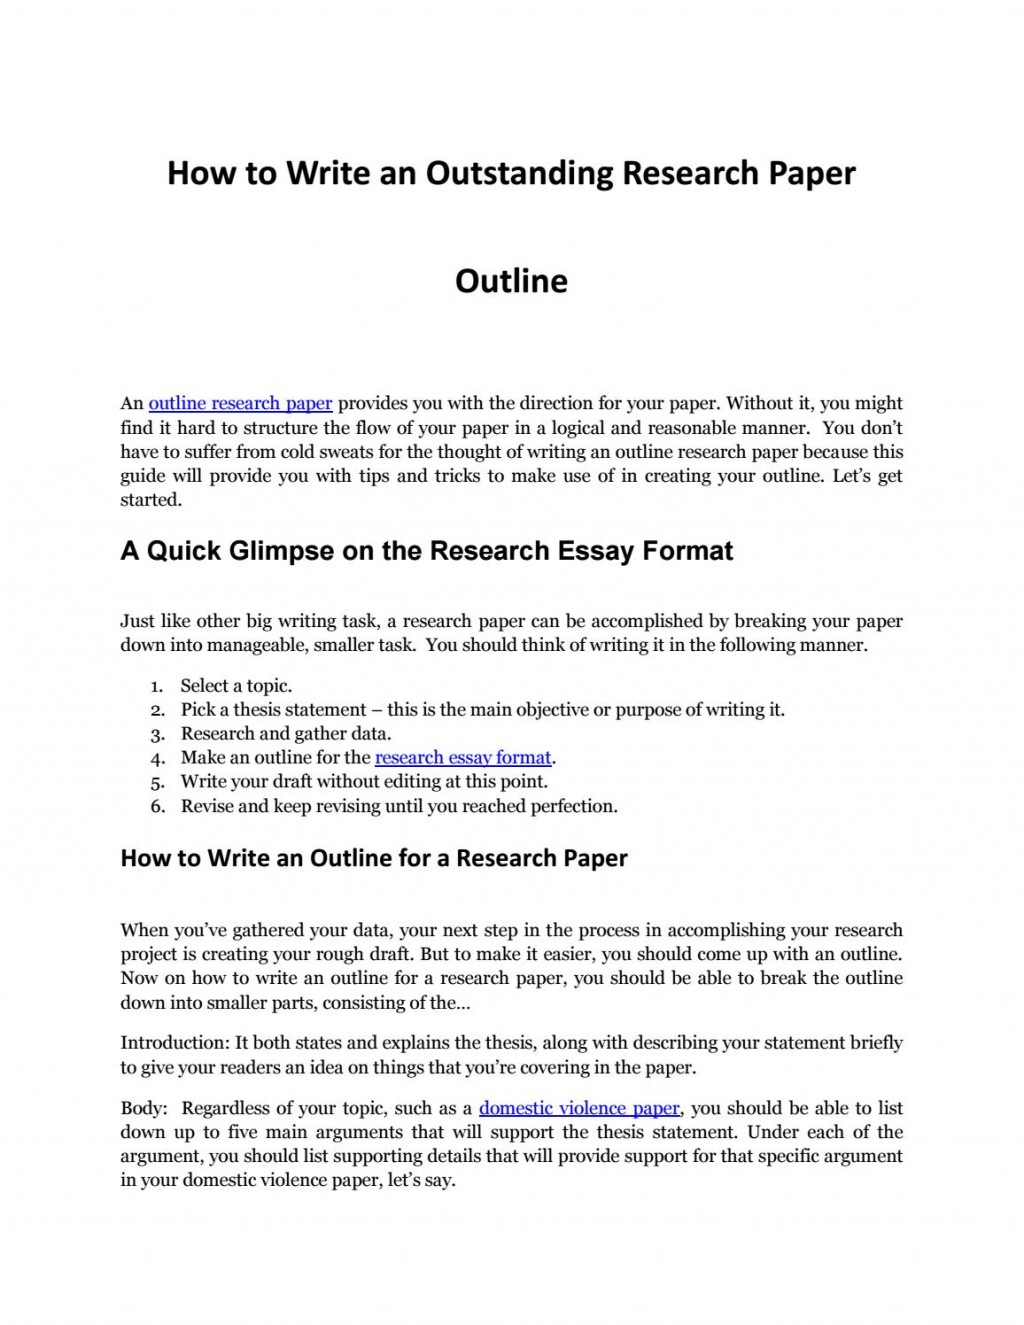 012 How To Write An Outline For Research Paper Page 1 Rare A Ppt Apa Mla Style Large